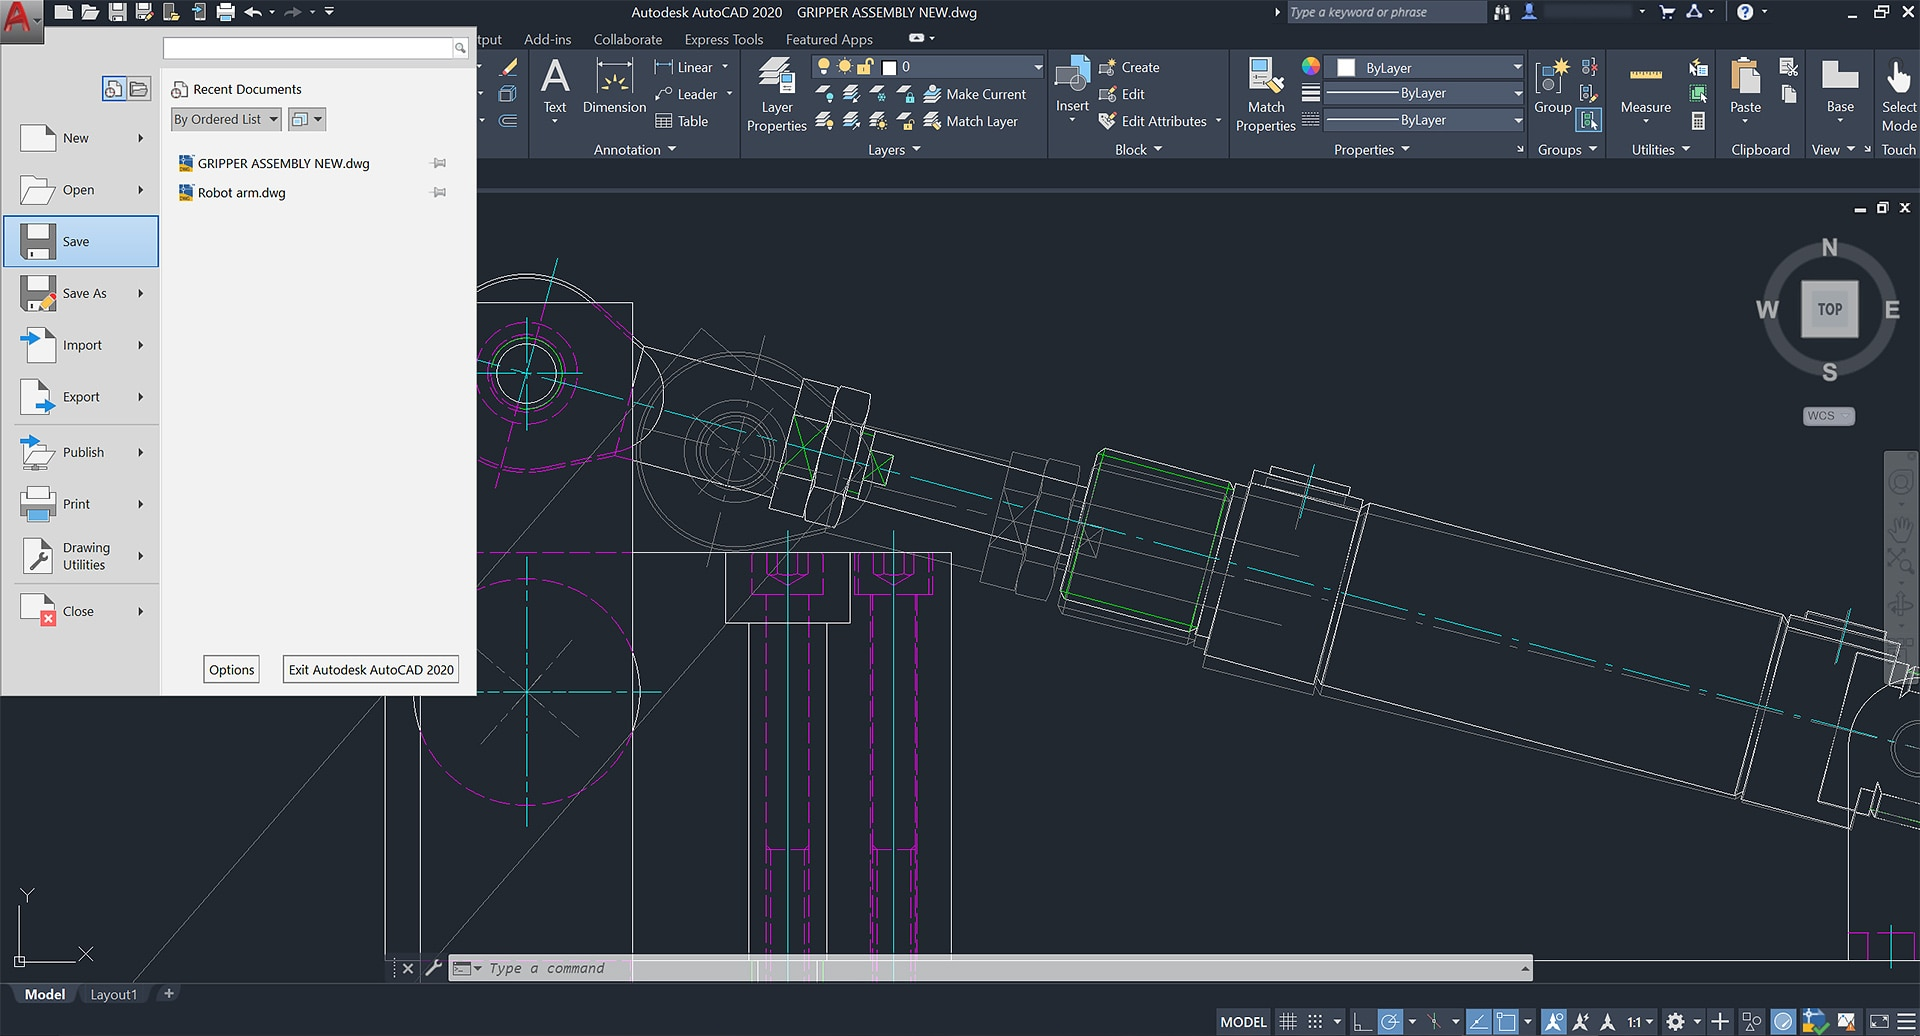 What's New in AutoCAD 2020 | Features | Autodesk